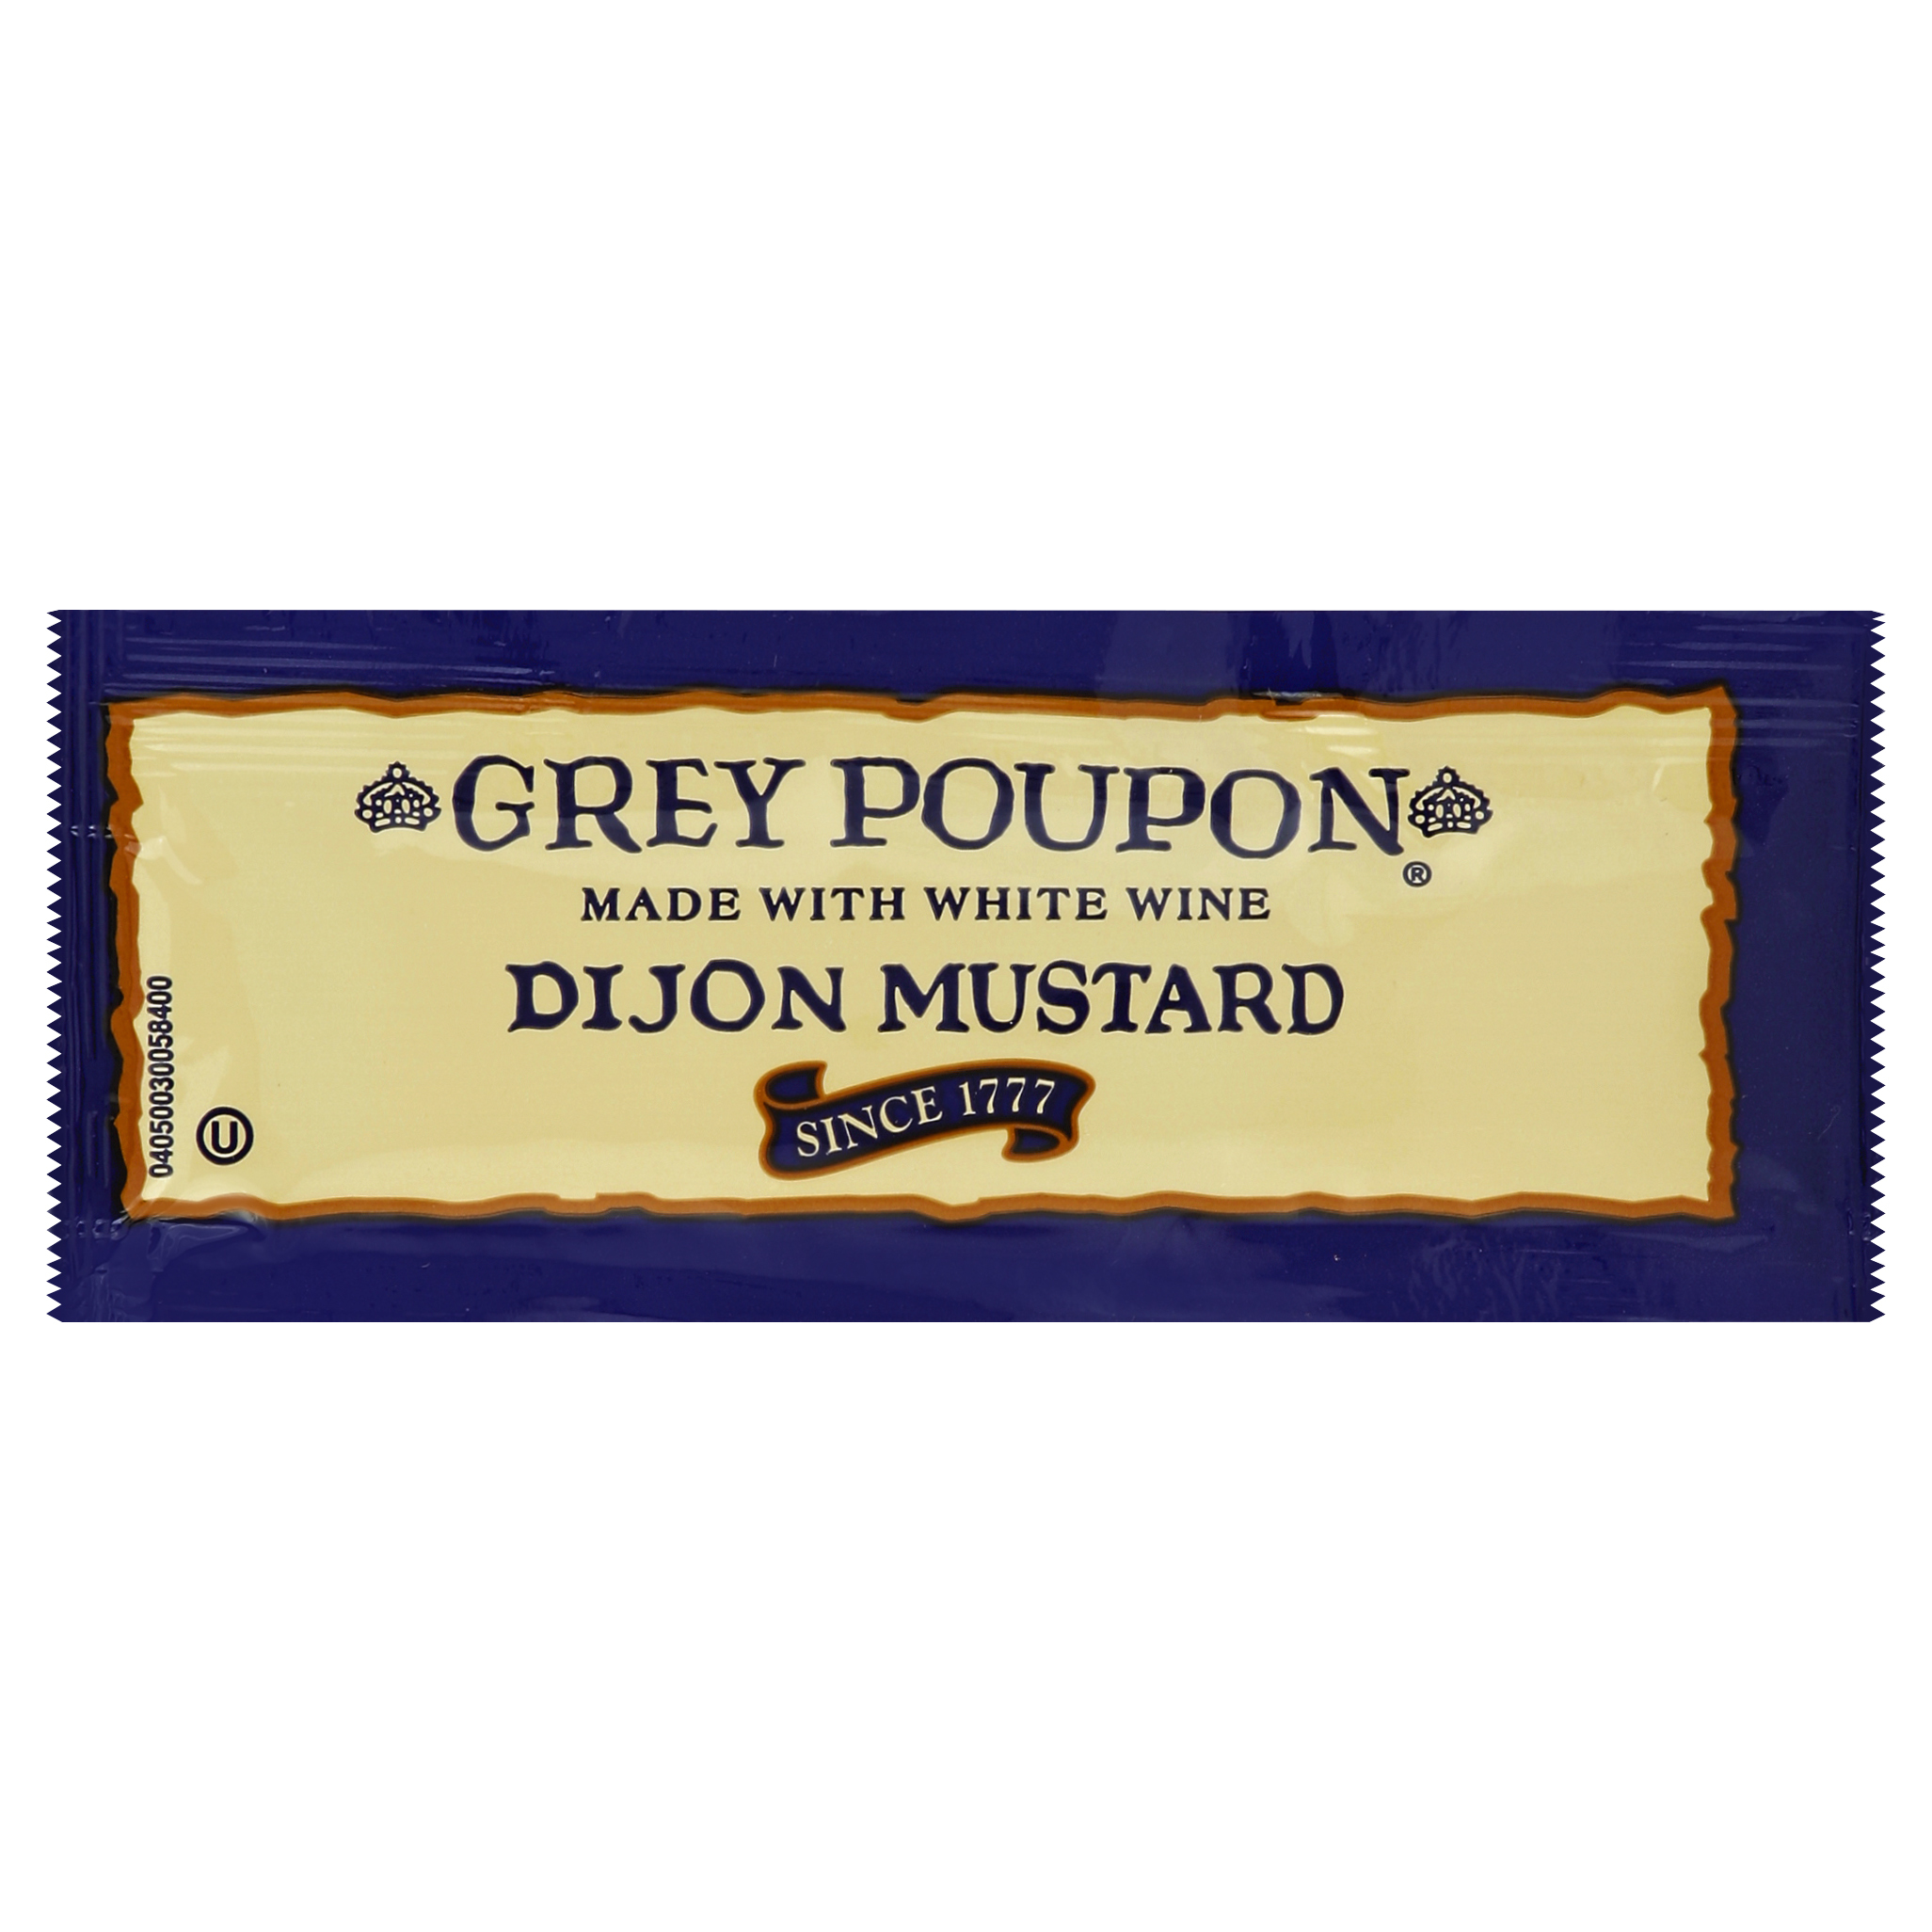 GREY POUPON Single Serve Dijon Mustard, 0.25 oz. Packets (Pack of 200)